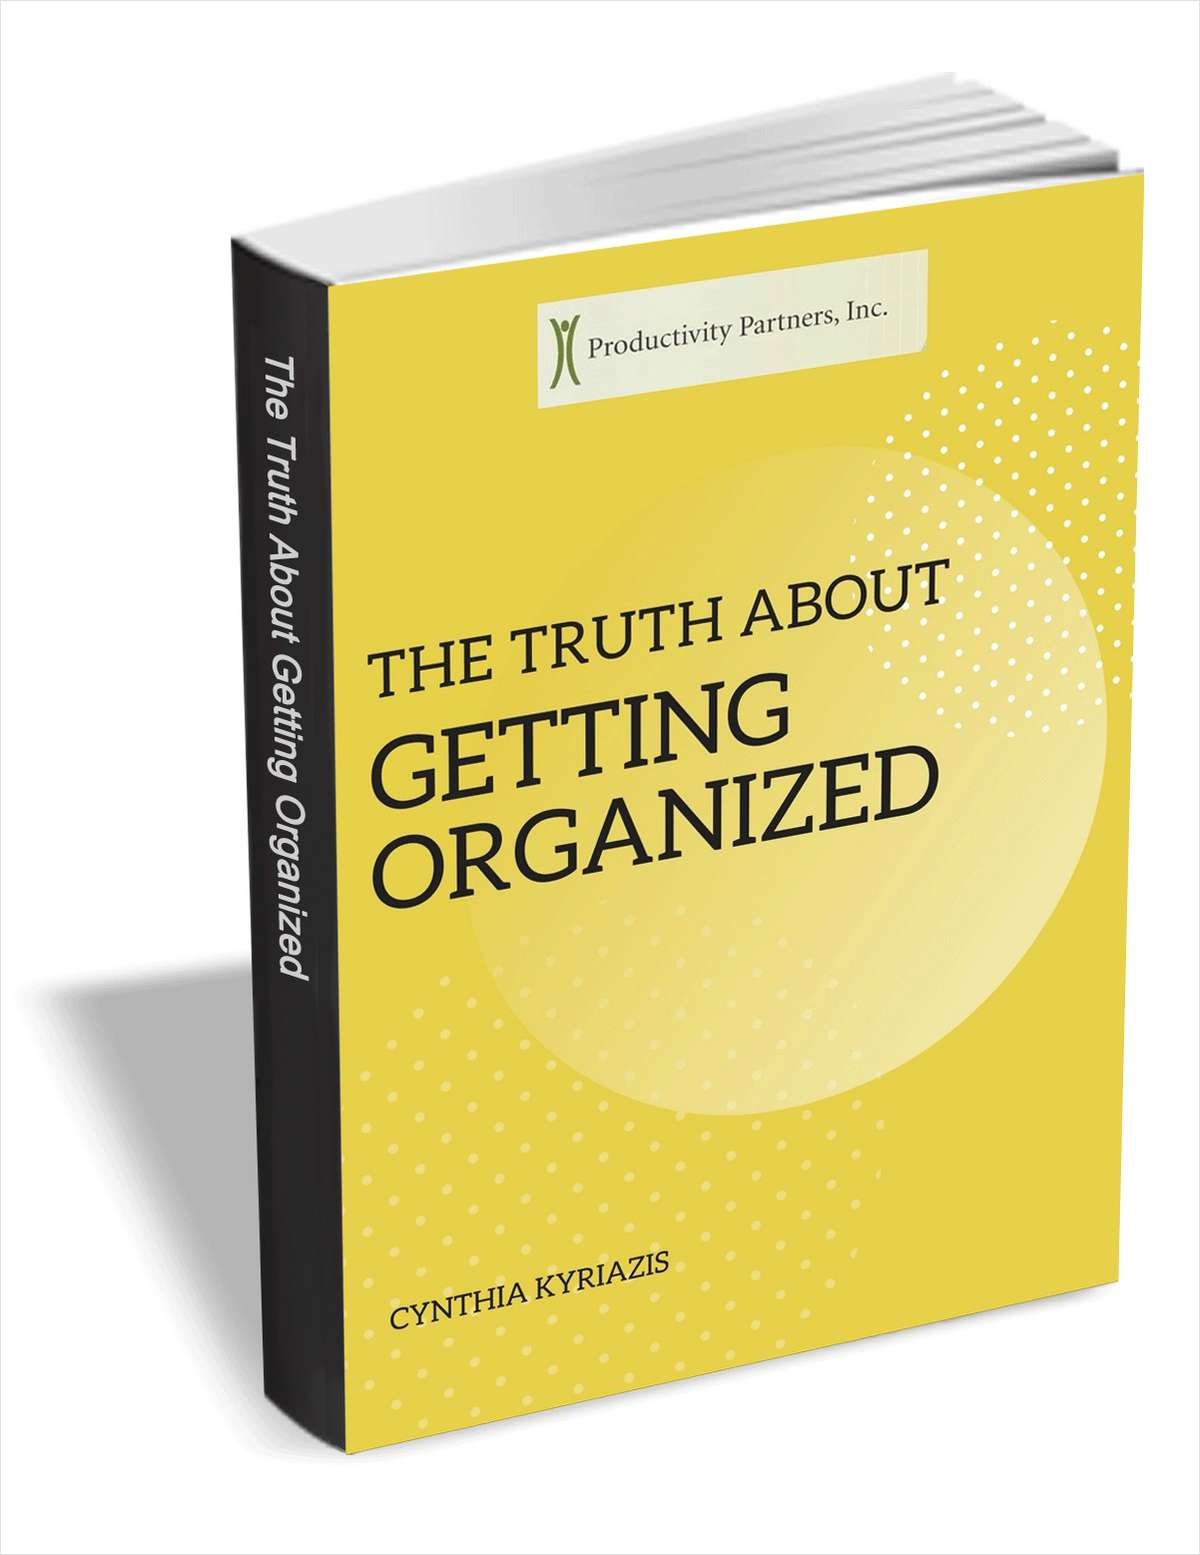 The Truth About Getting Organized